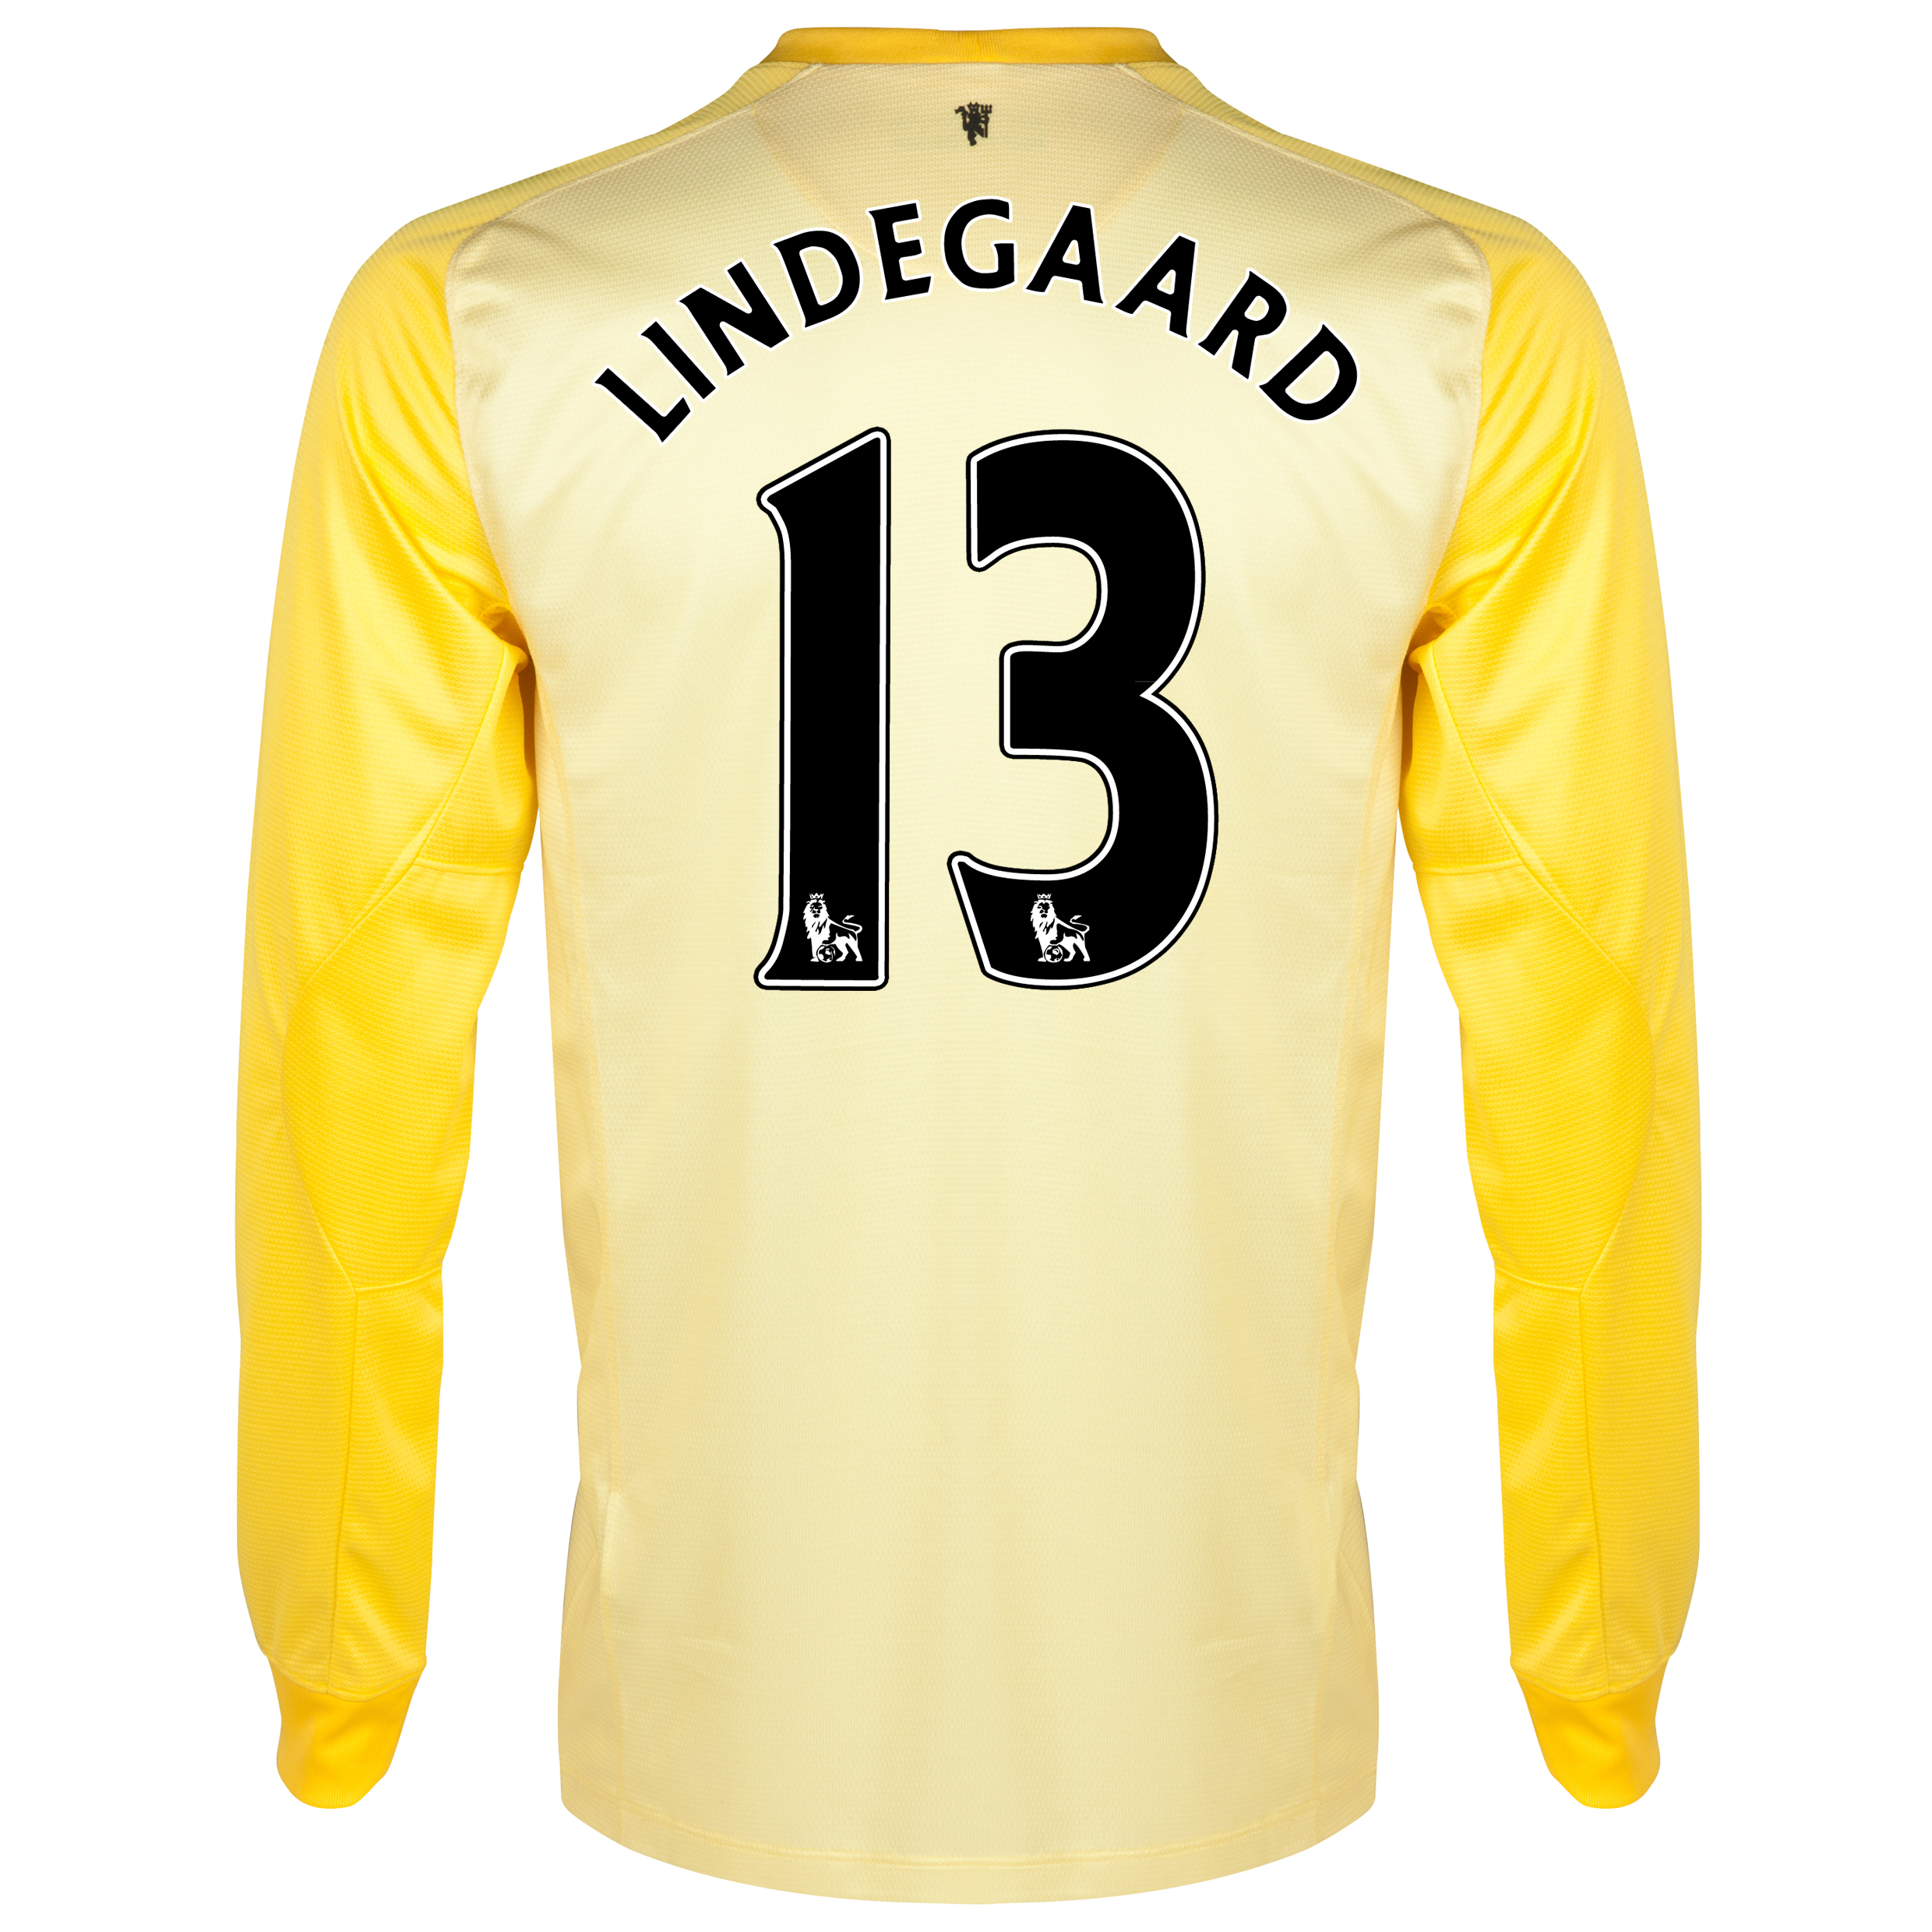 Manchester United Change Goalkeeper Shirt 2013/14 with Lindegaard 13 printing